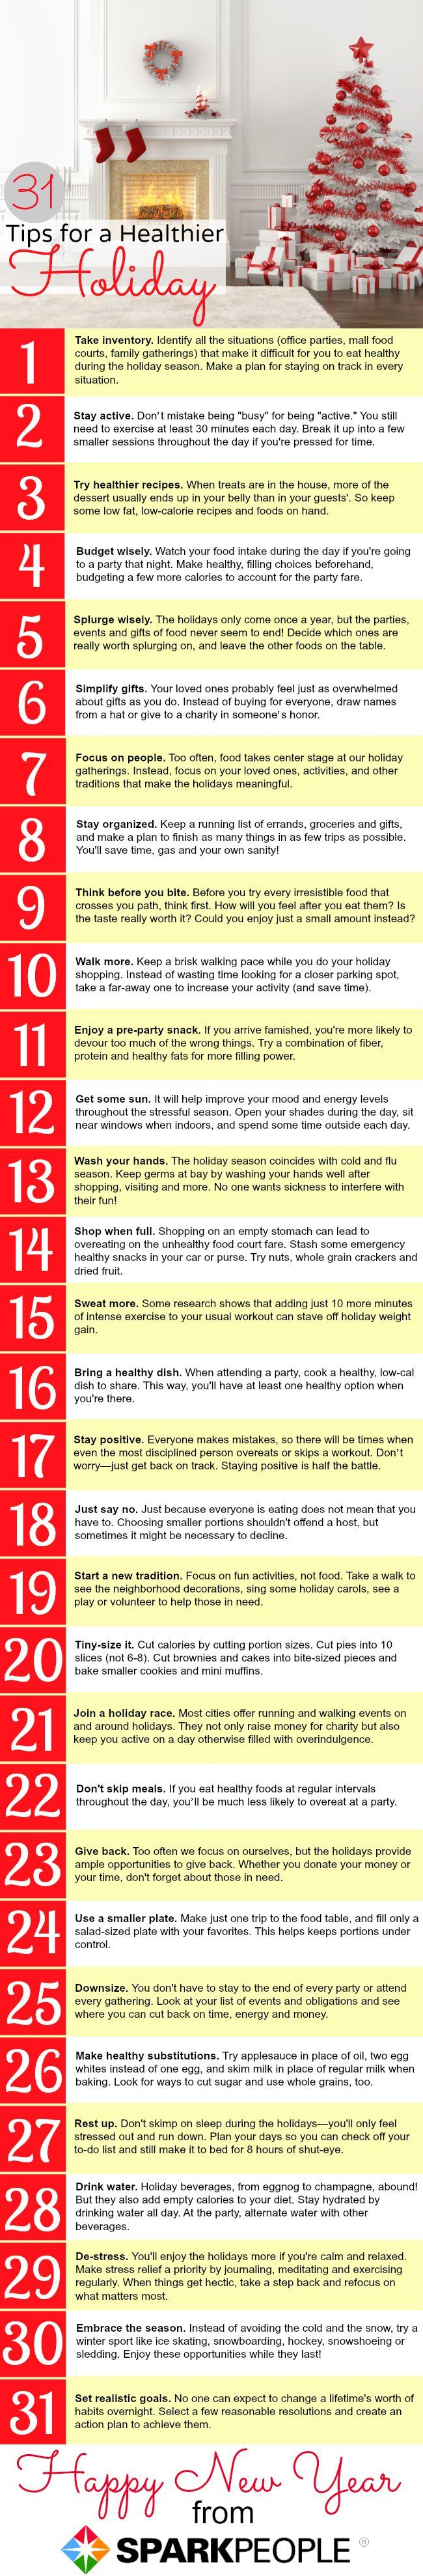 31 Tips to Healthier Holidays